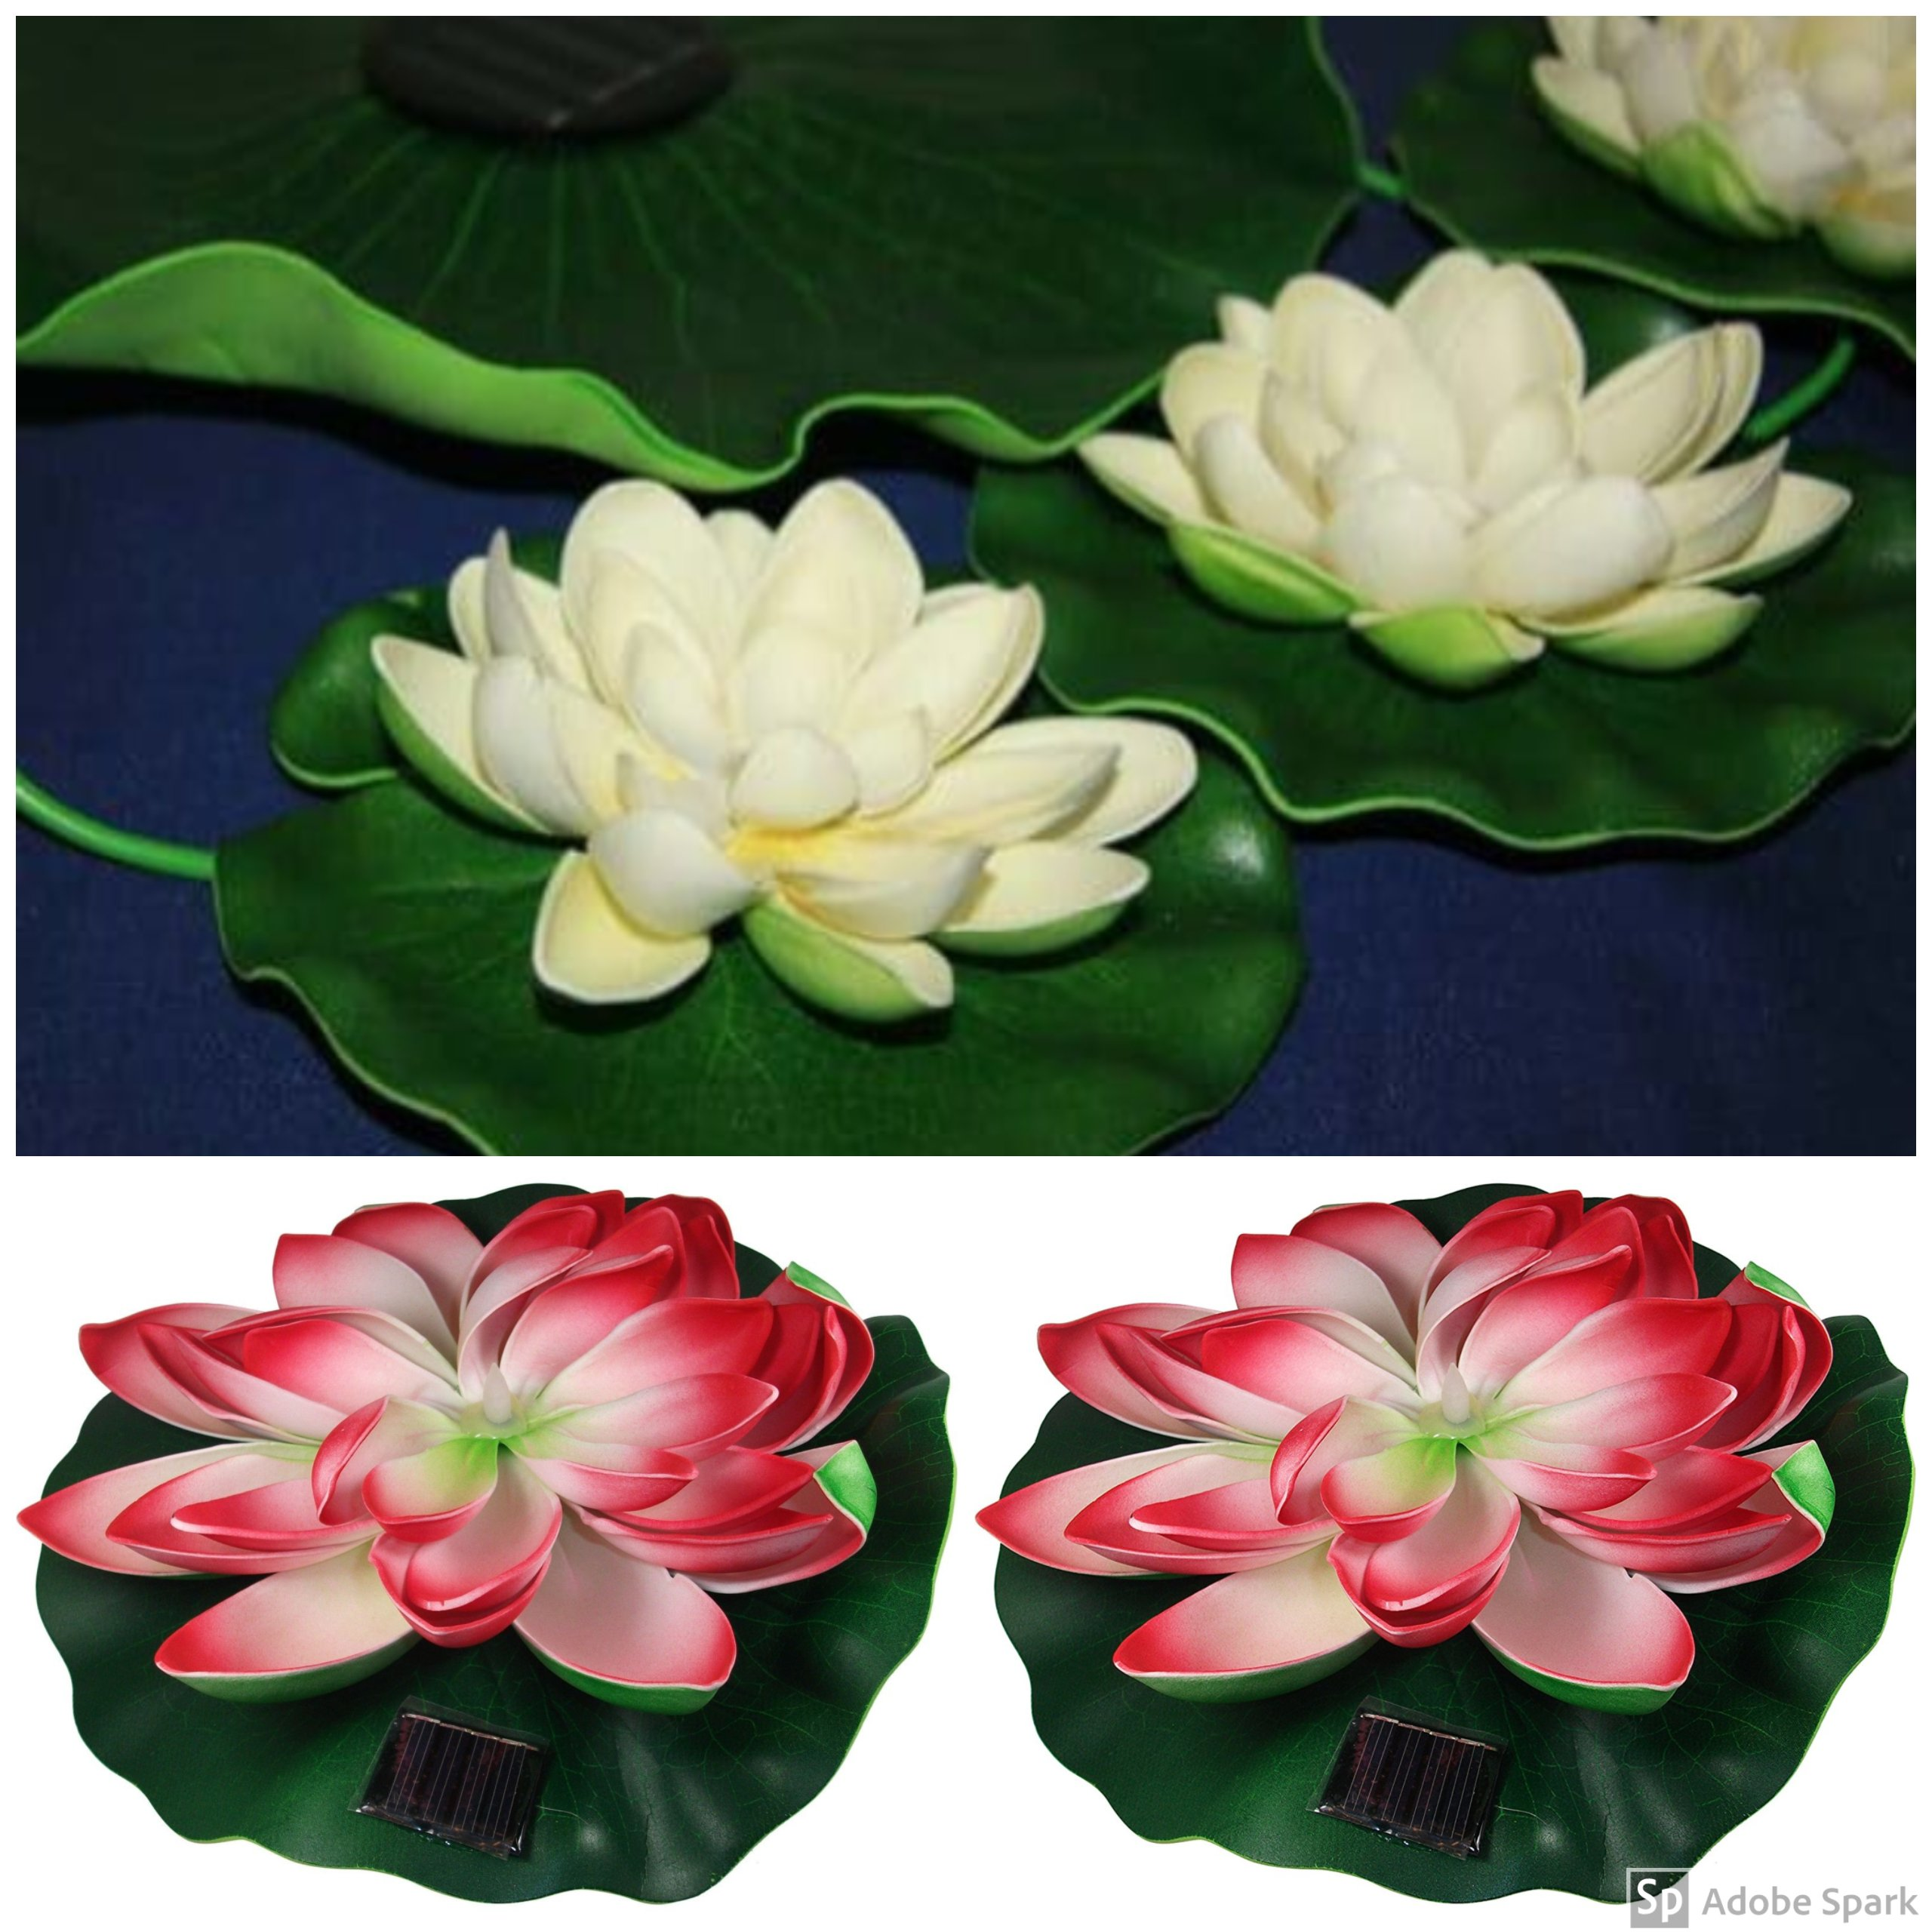 Solar Pond Decor Kit, Includes 7'' Lily, 10'' Lily & White Lily Grouping with 3 Lilies